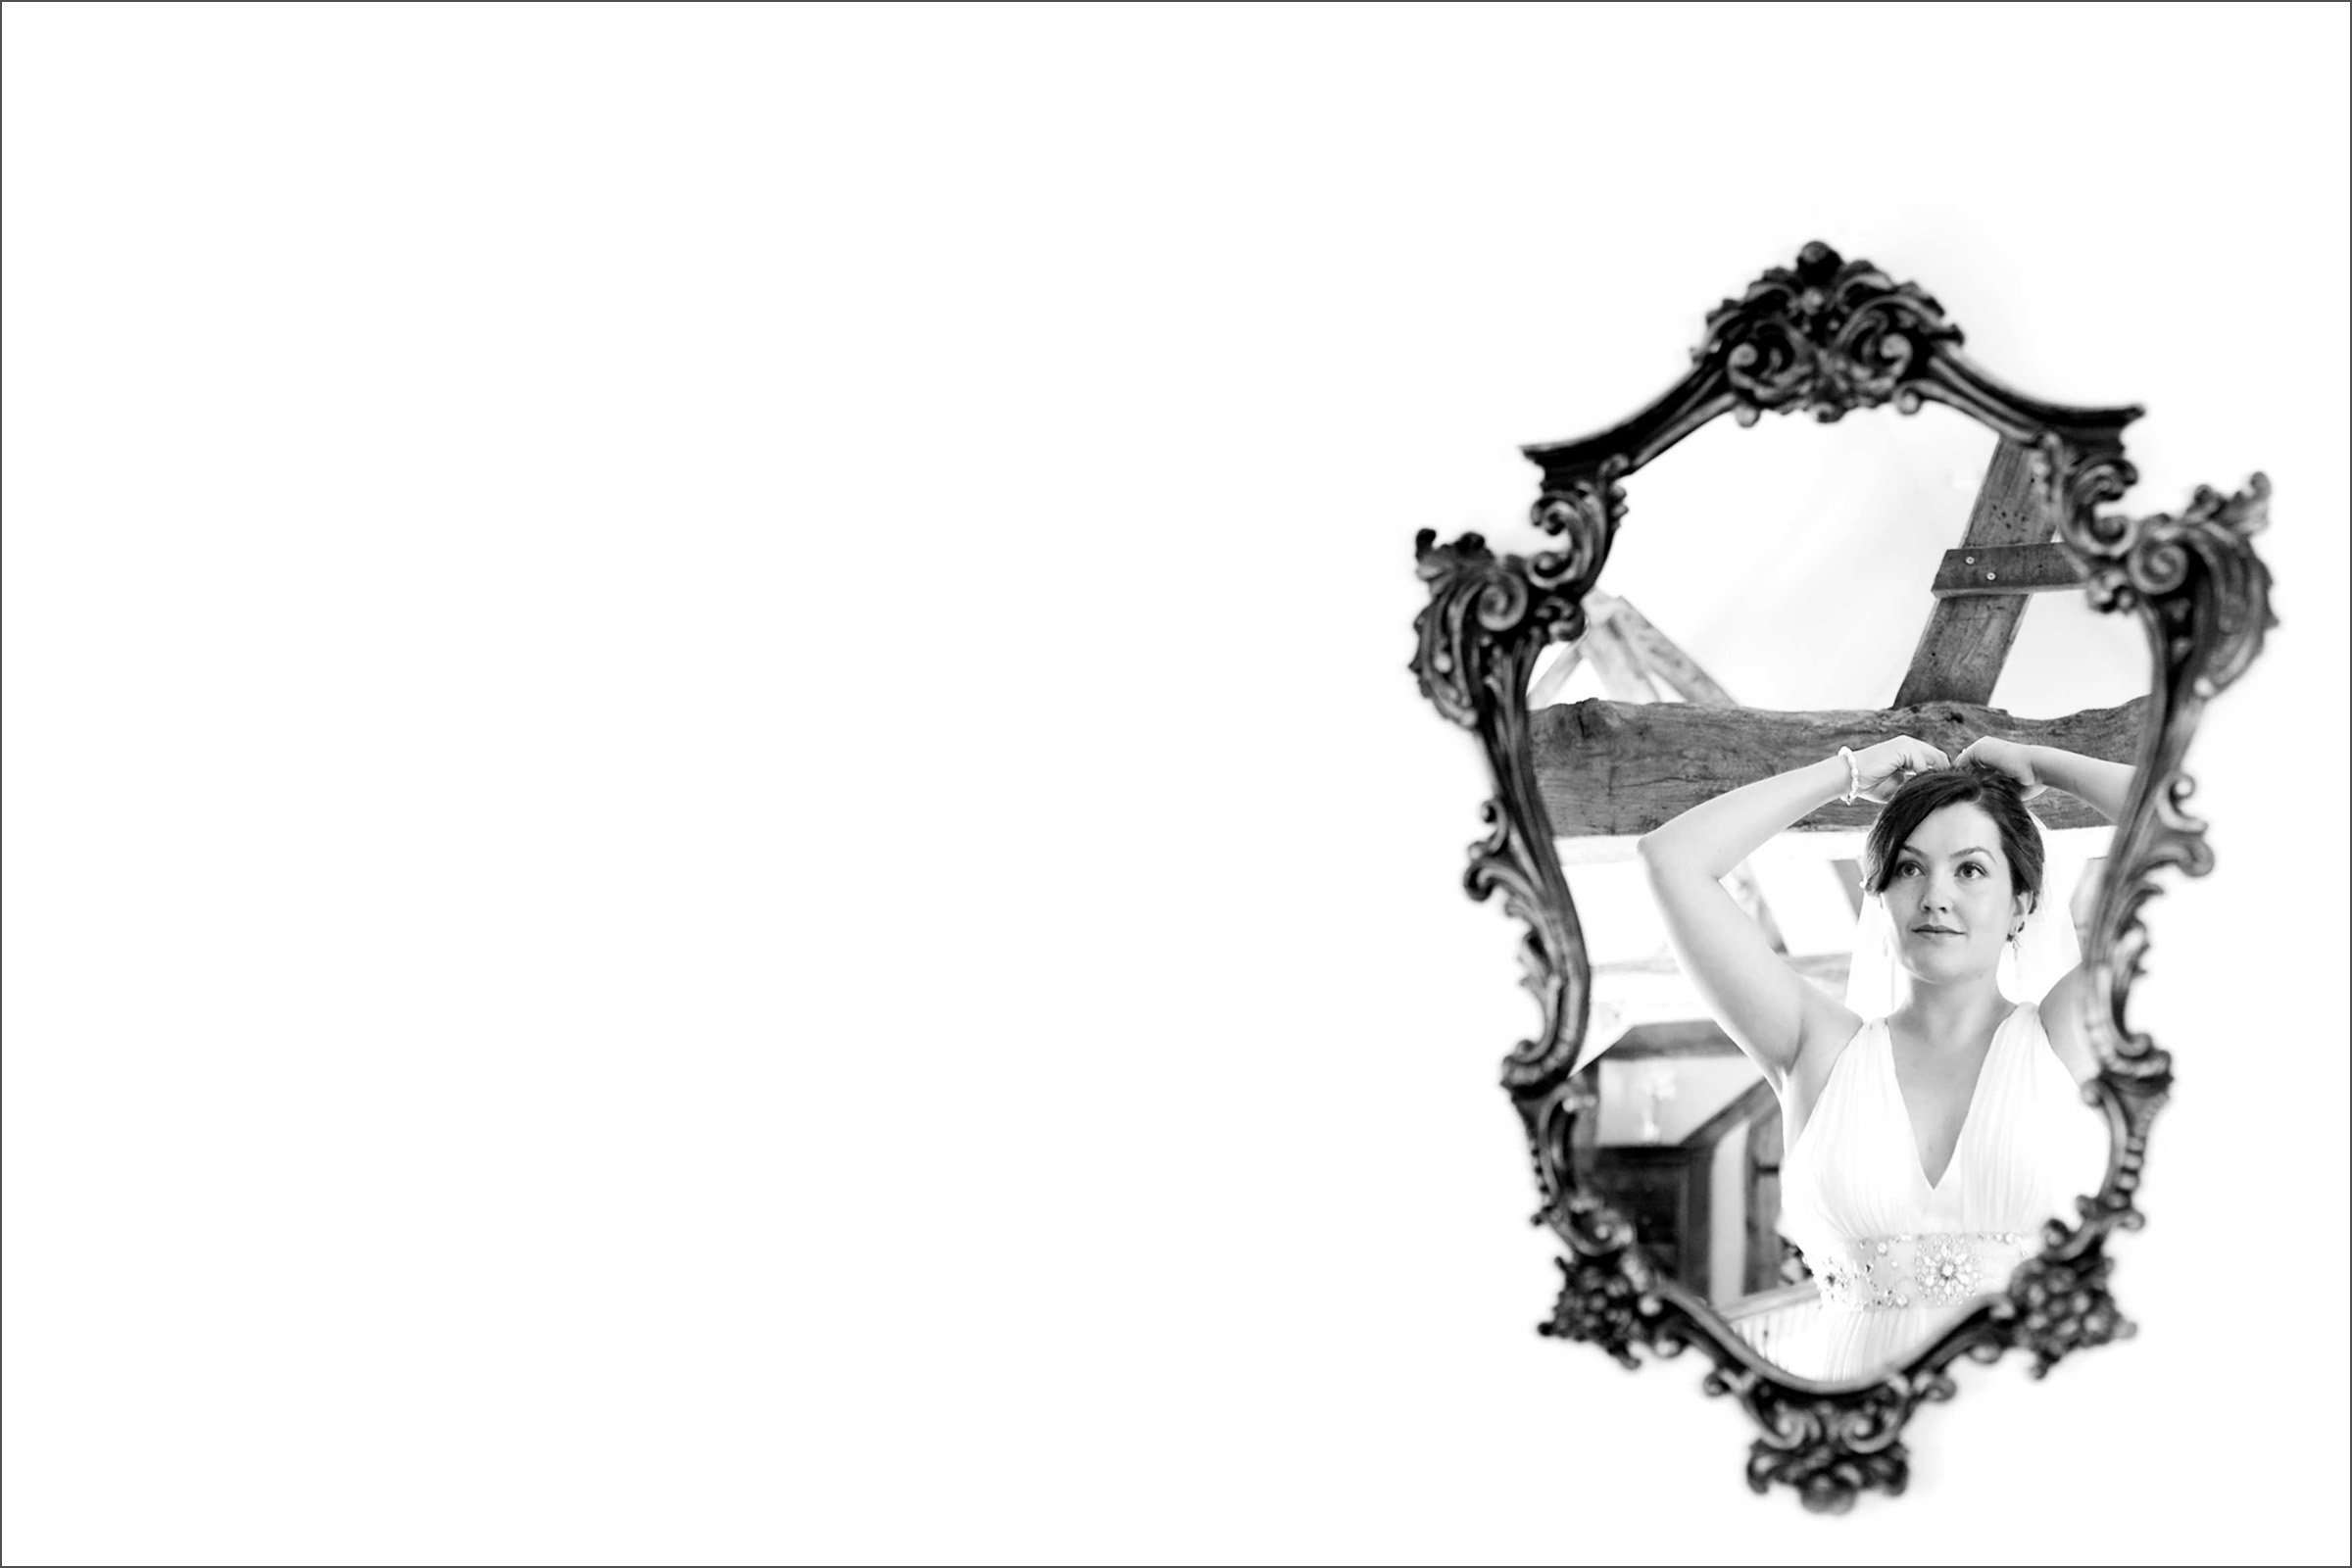 A black and white wedding photo of a bride adjusting her veil in a vintage mirror. Taken in Chichester, West Sussex